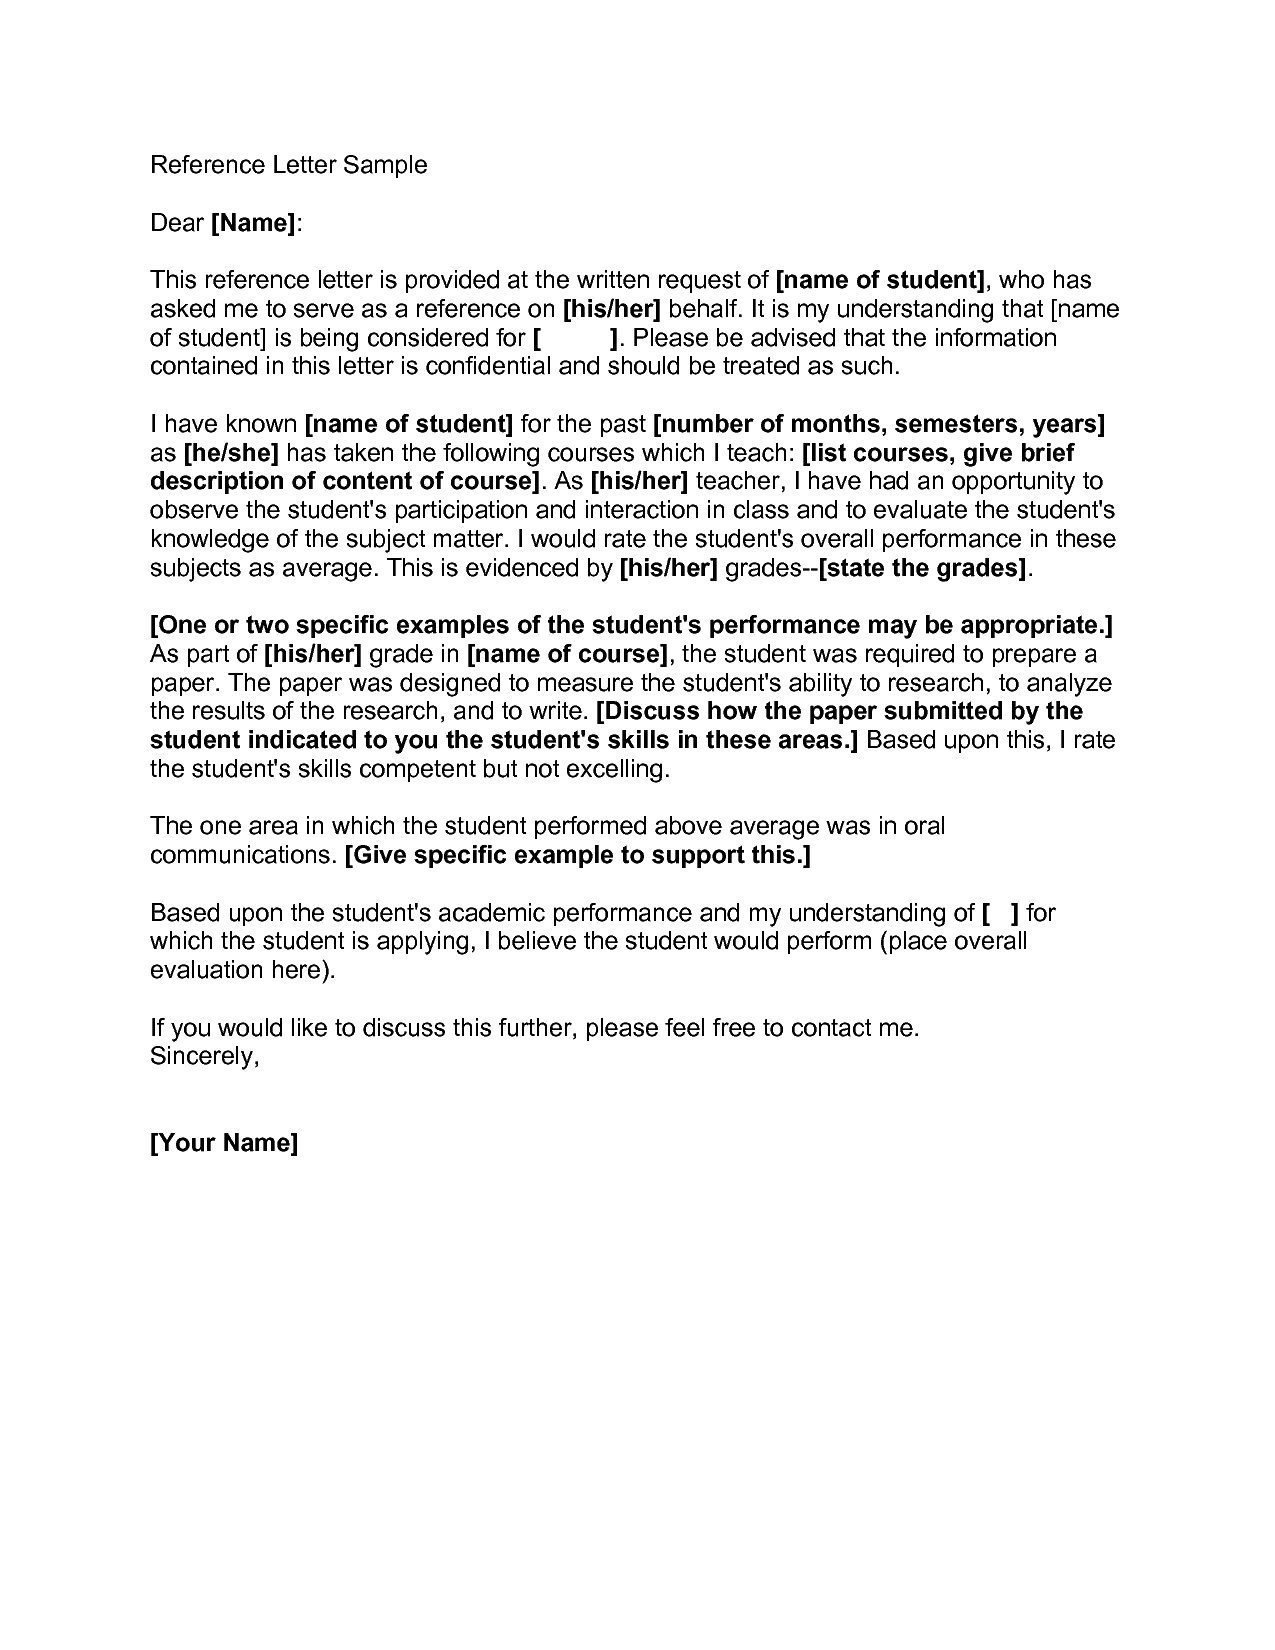 Reference letter samplesexamples of reference letters request letter reference letter samplesexamples of reference letters request letter sample altavistaventures Image collections